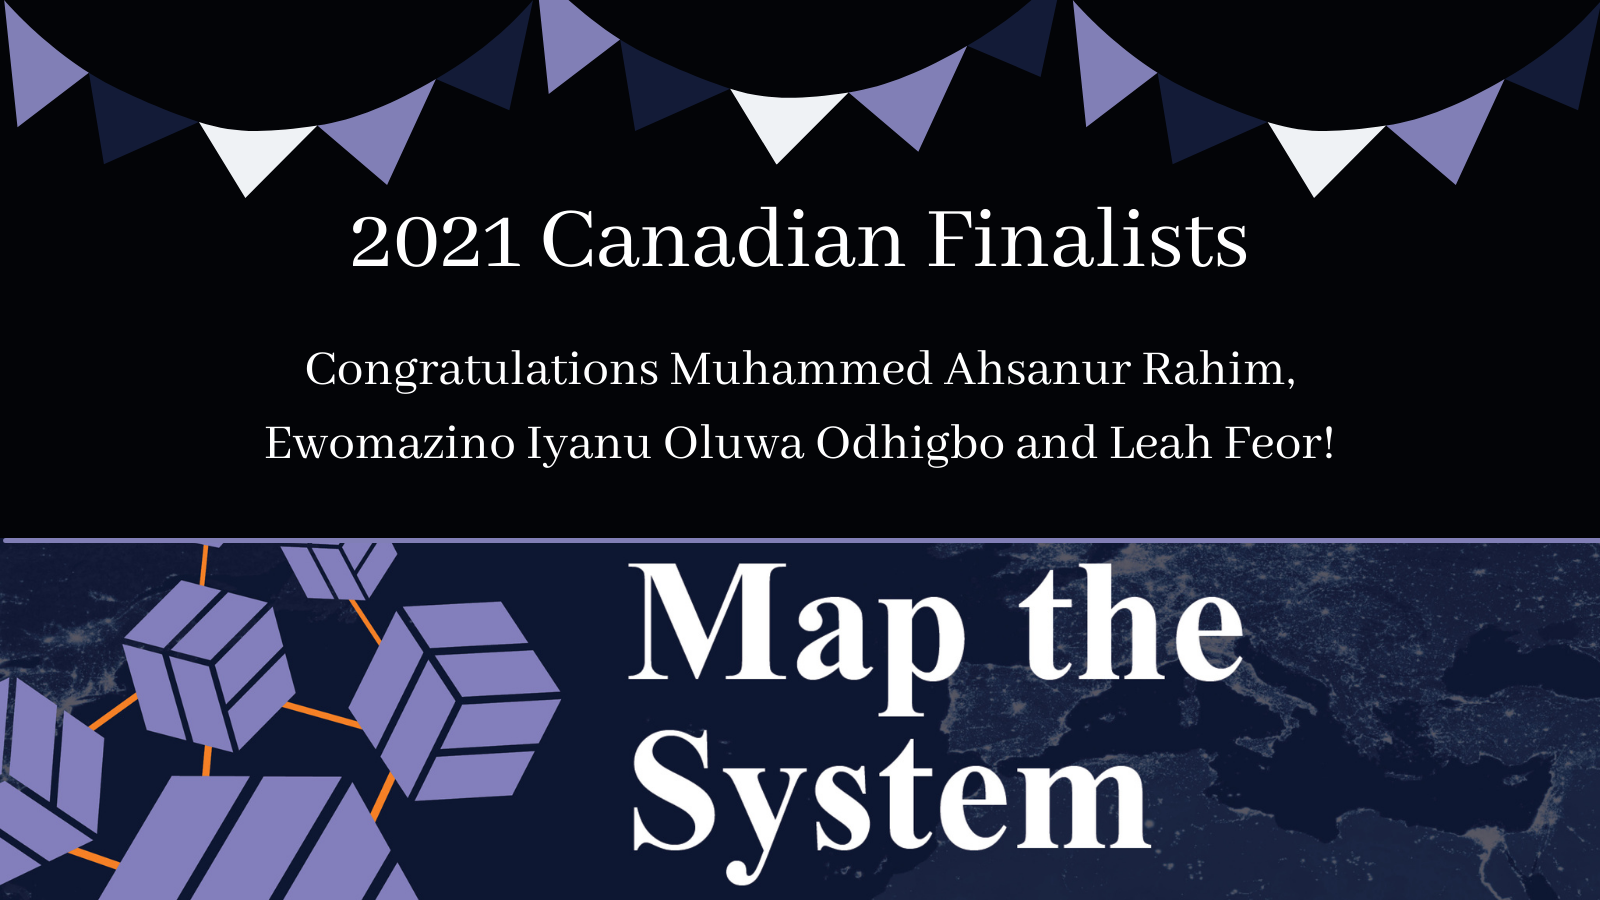 Congratulations Muhammed Ahsanur Rahim, Leah Feor and Ewomazino Odhigbo for being 1/4 Map the System Canada Finalists!